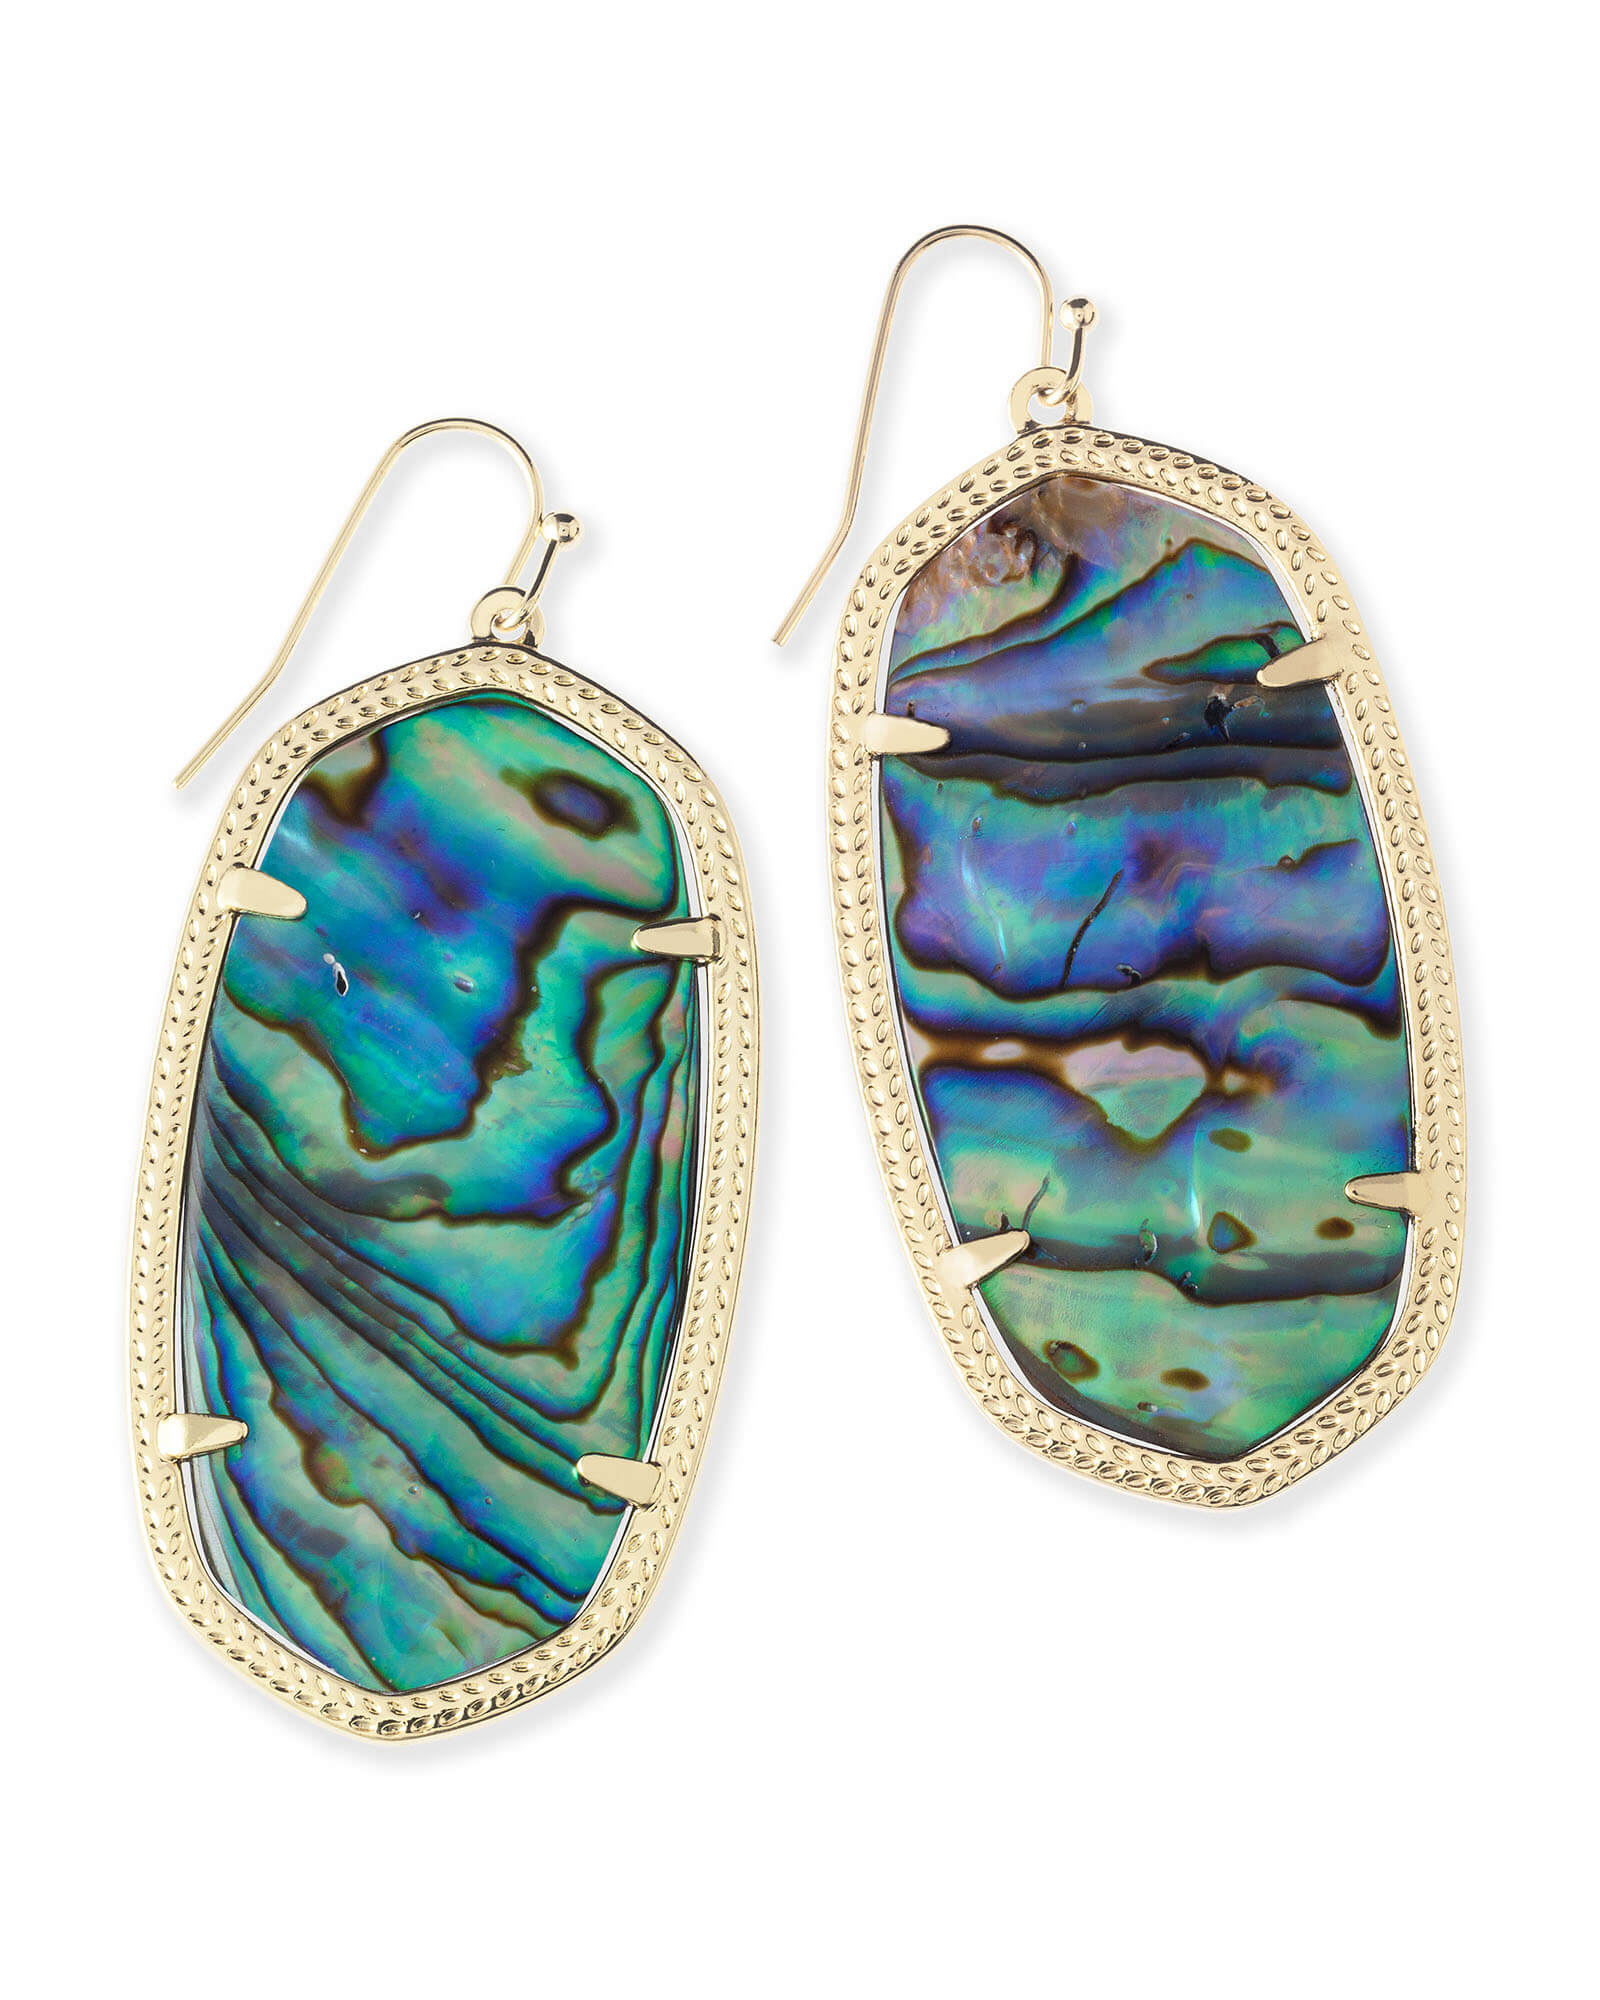 Danielle Gold Drop Earrings in Abalone Shell